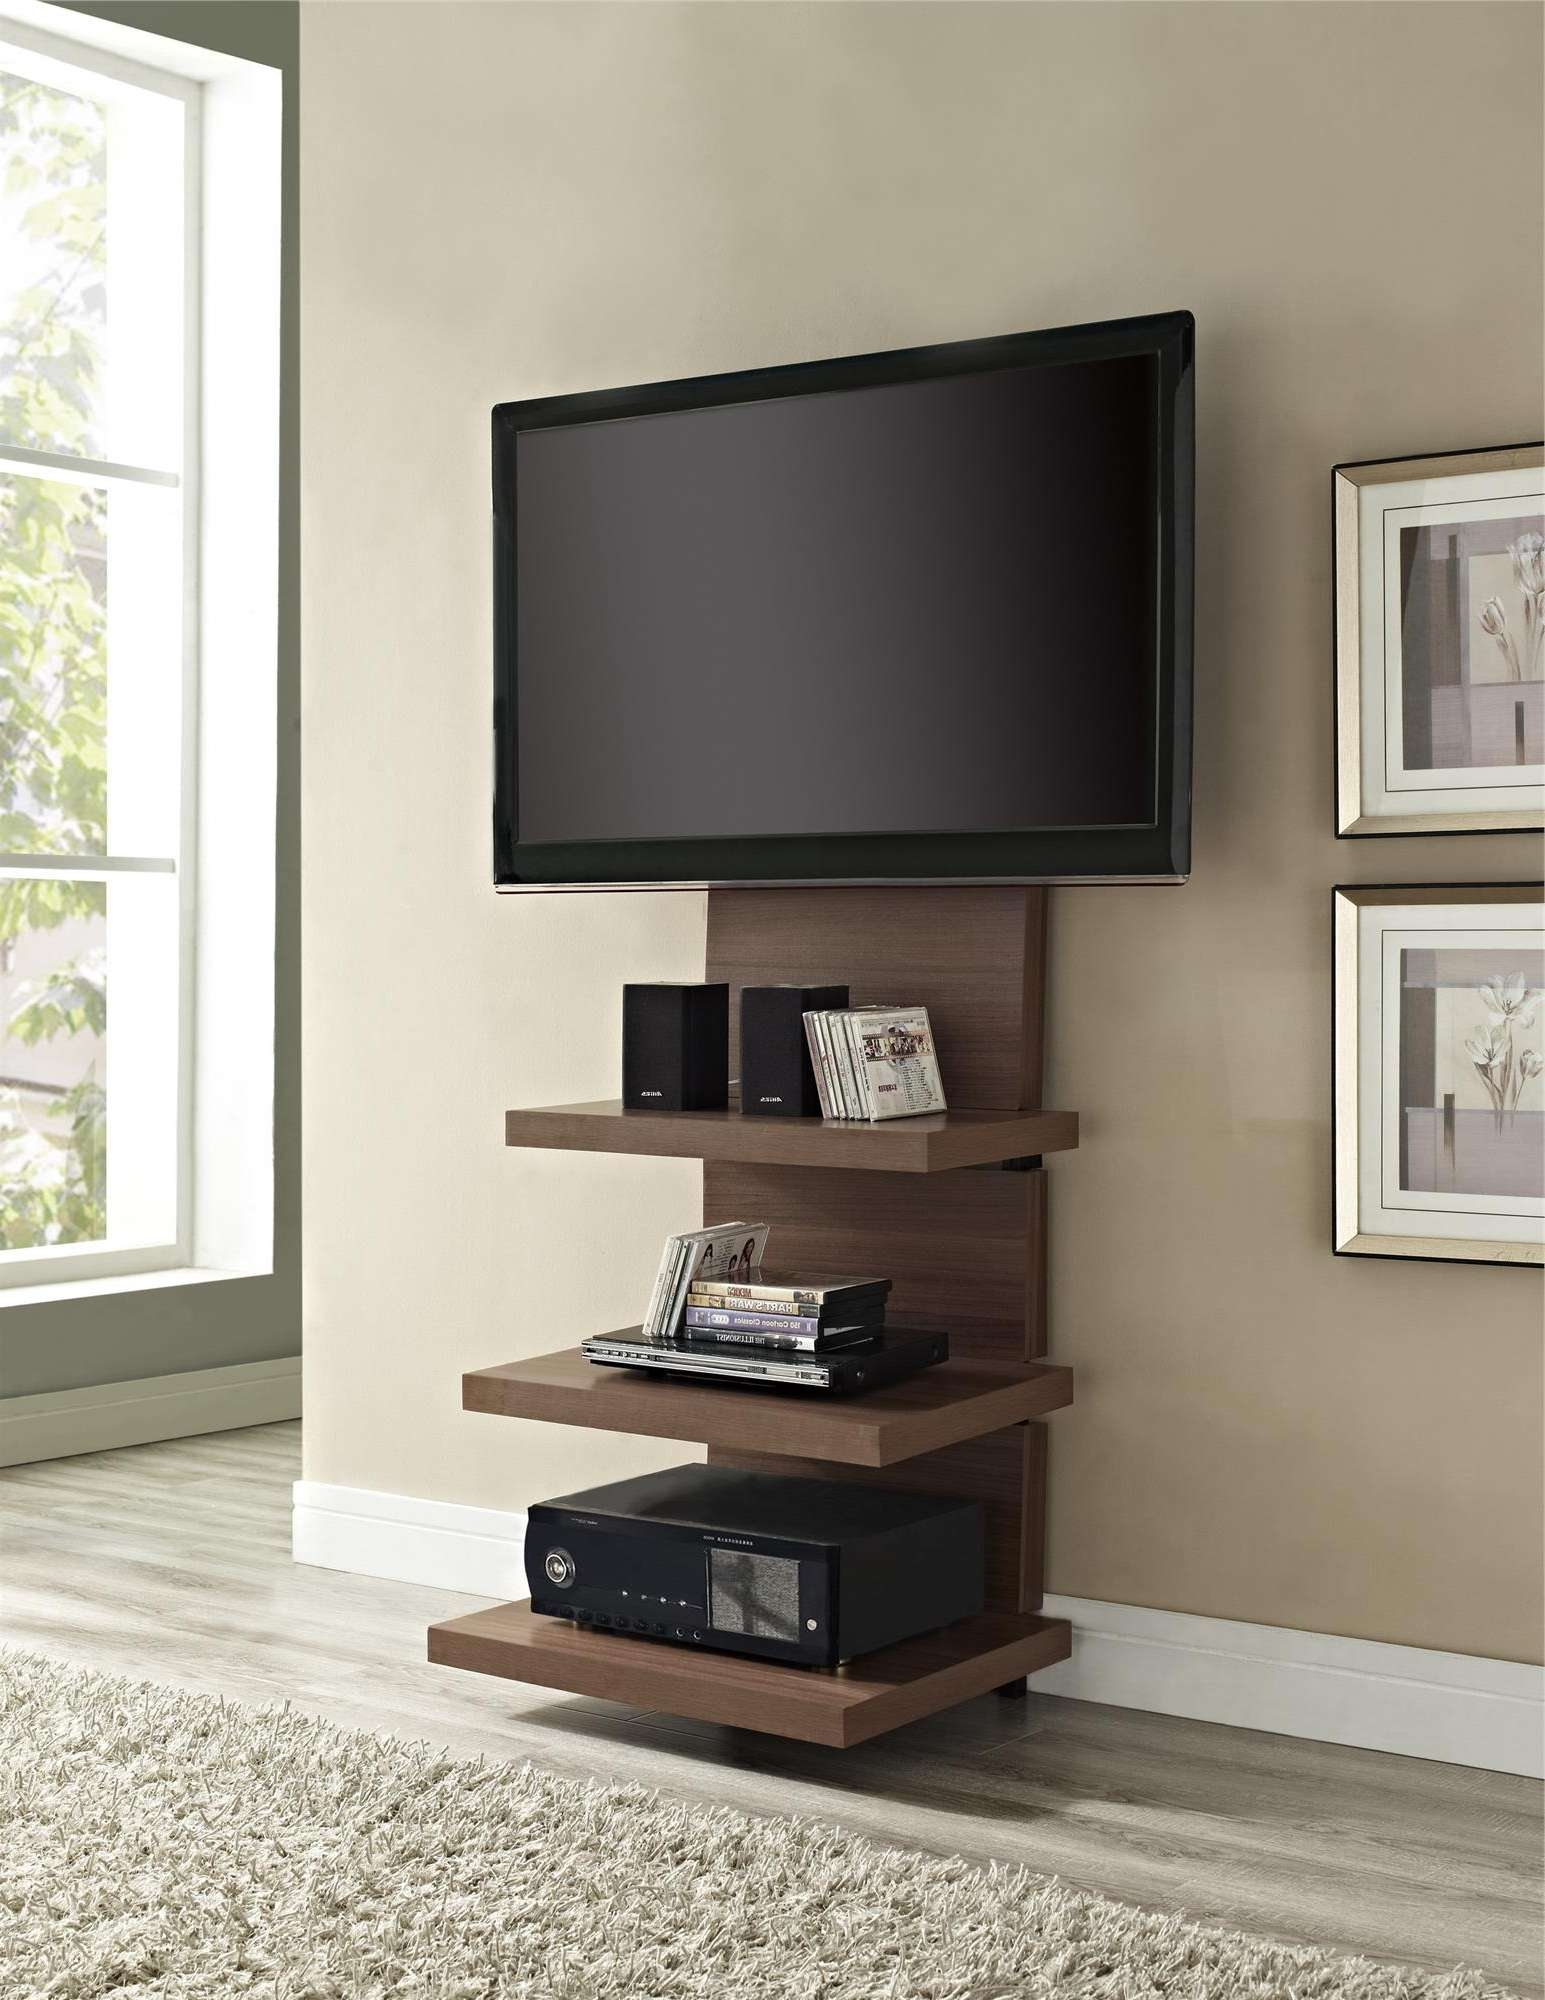 Tv Stand : Tall Narrow Tv Stands For Flat Screens And Standstall Throughout Narrow Tv Stands For Flat Screens (View 12 of 15)